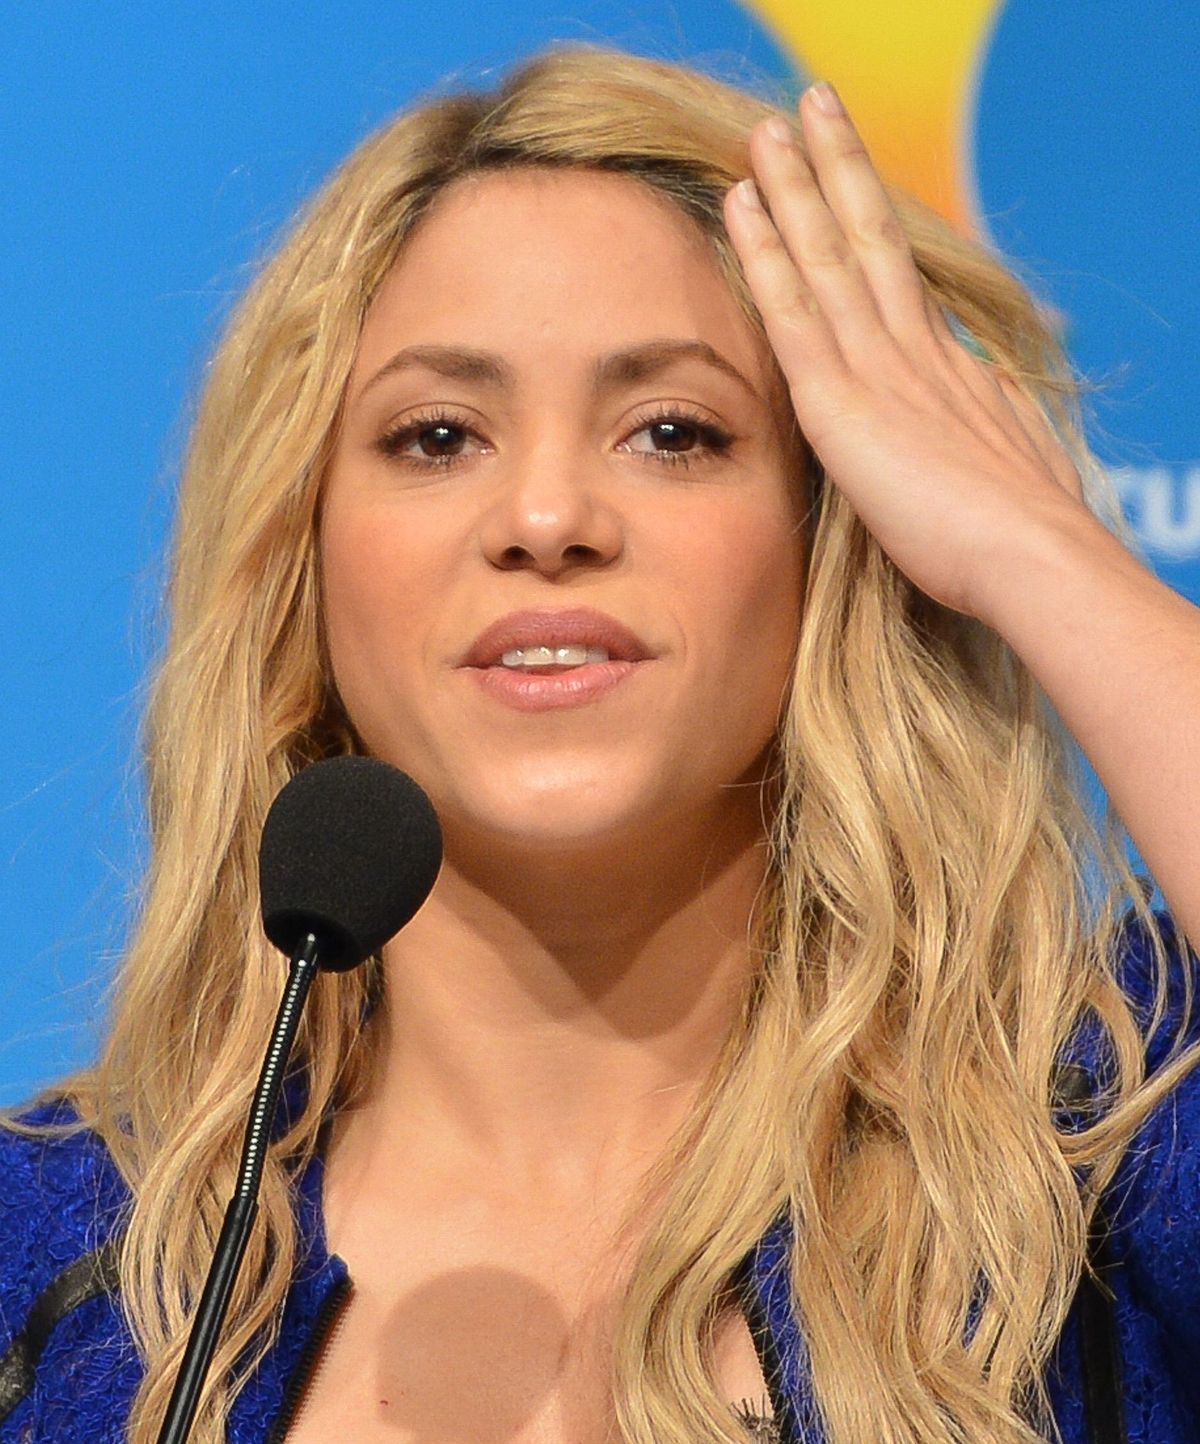 shakira wikipediashakira chantaje, shakira mp3, shakira 2016, shakira chantaje mp3, shakira try everything, shakira waka waka, shakira 2017, shakira la la la скачать, shakira песни, shakira wikipedia, shakira whenever wherever, shakira hips don't lie, shakira waka waka скачать, shakira she wolf, shakira chantaje текст, shakira loca скачать, shakira chantaje boxca, shakira слушать, shakira la tortura, shakira objection